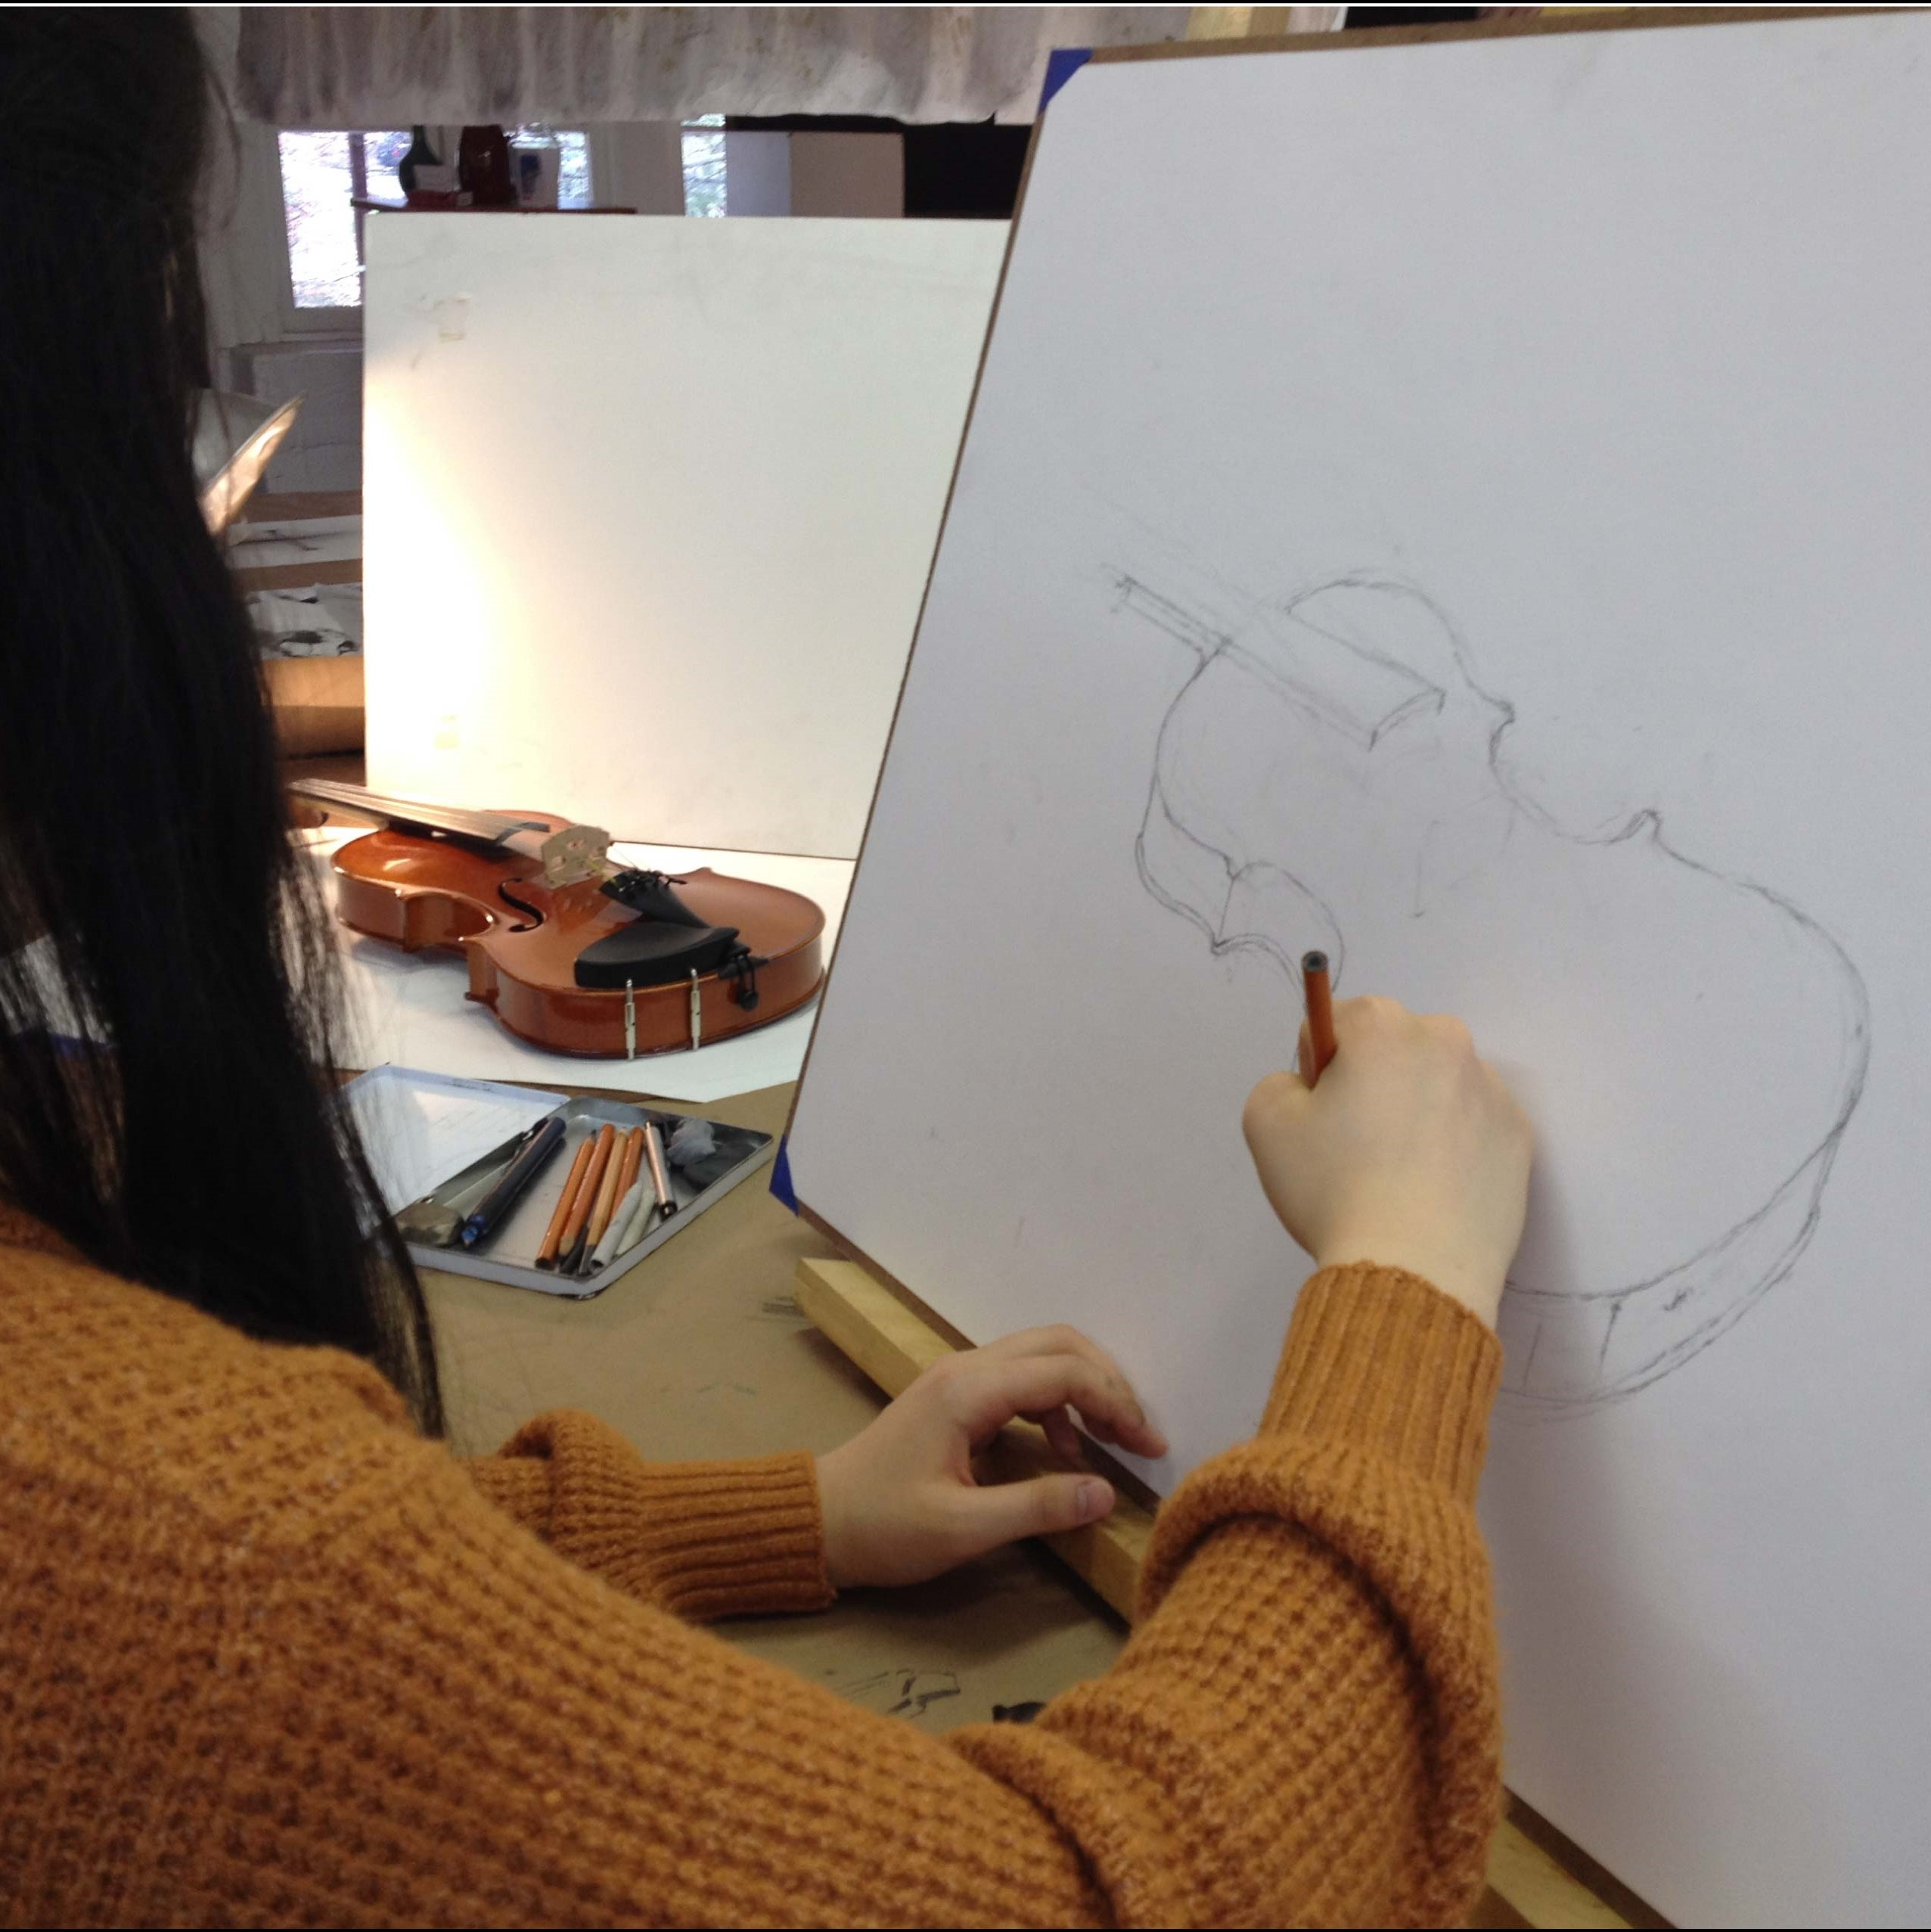 Learn To Sketch And Draw Art Set